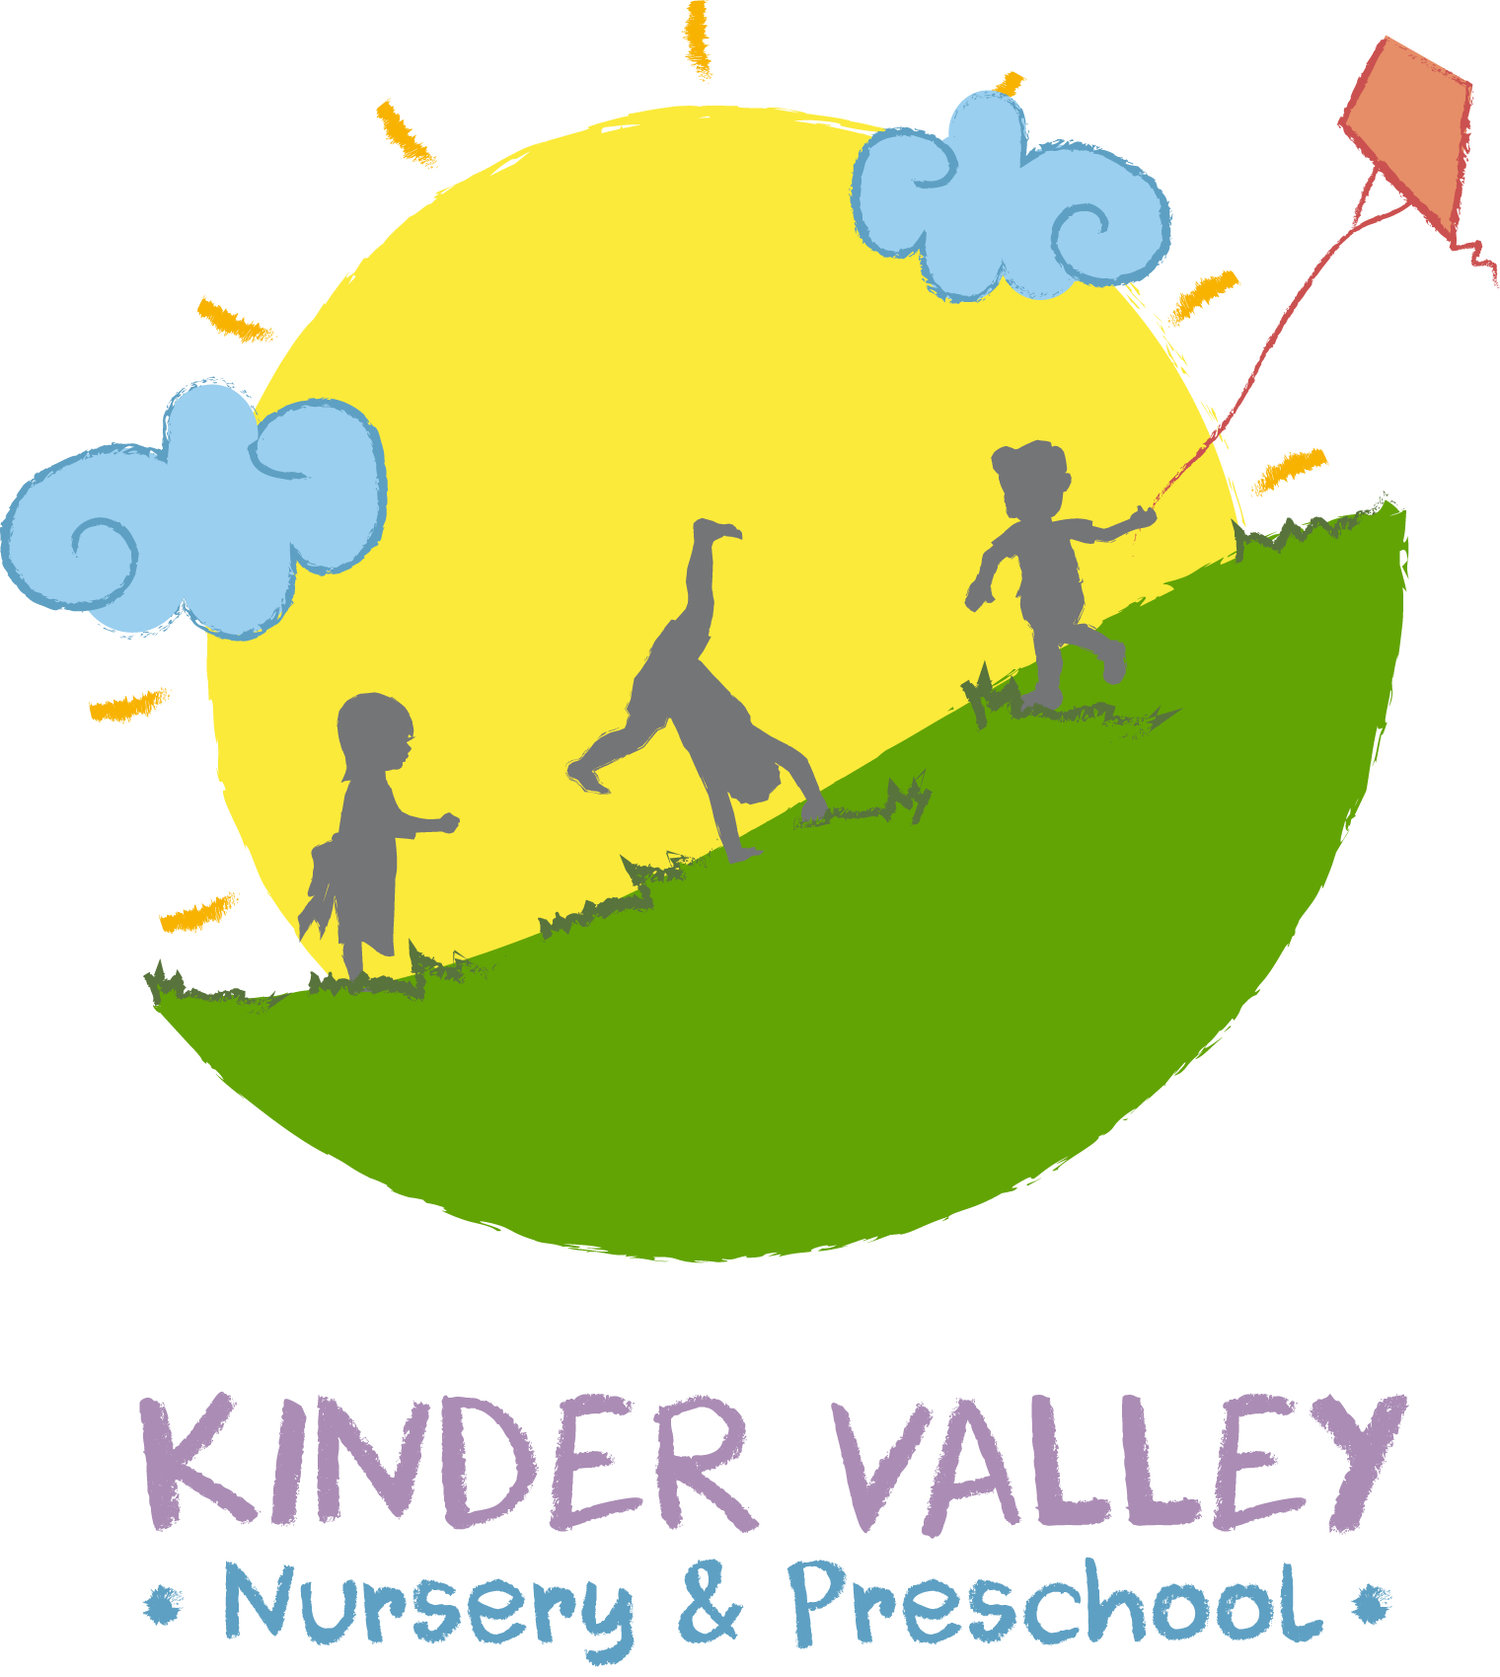 Kinder Valley Nursery & Pre School